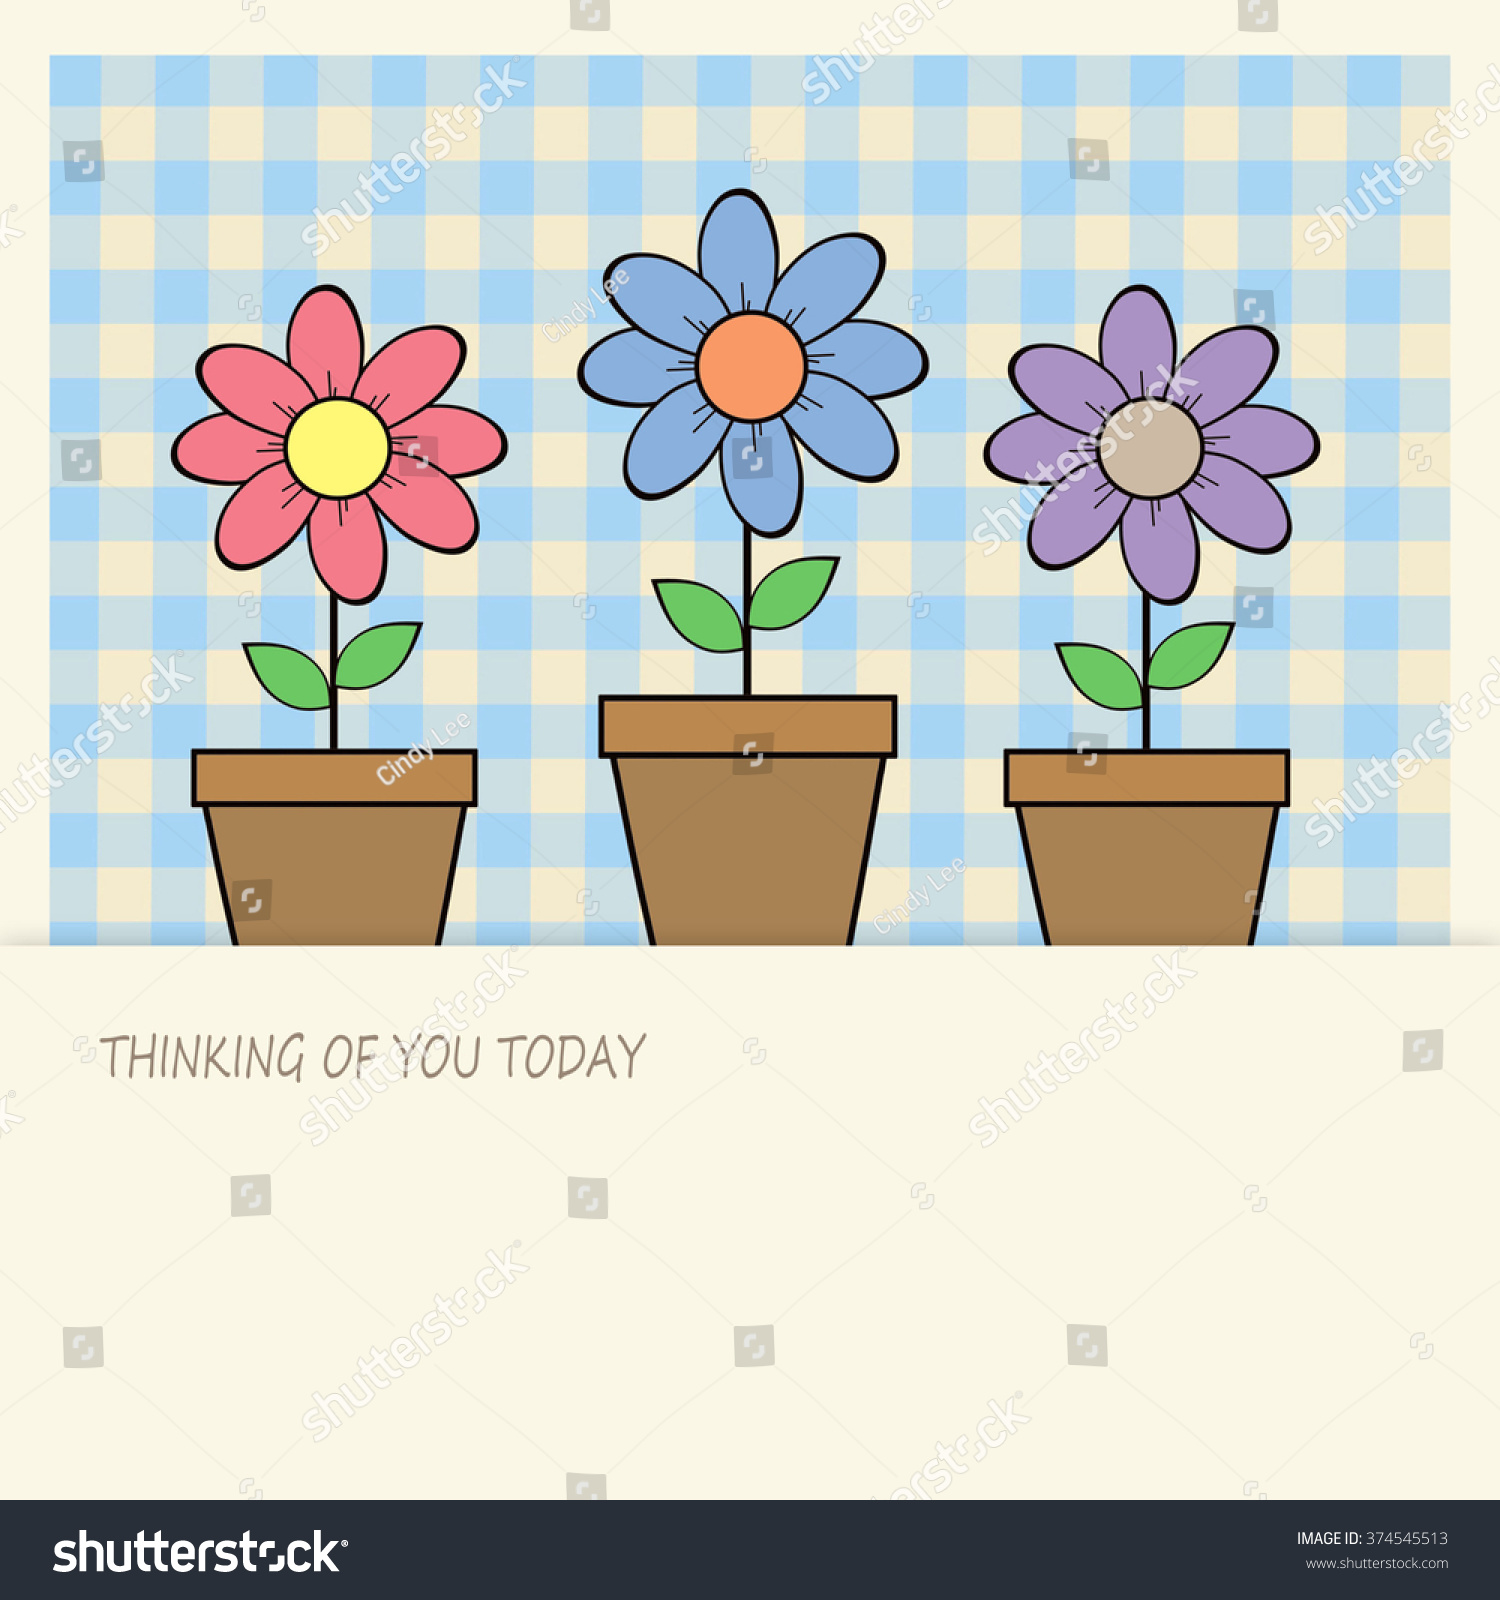 Royalty Free Stock Illustration Of Flower Pots Thinking You Today